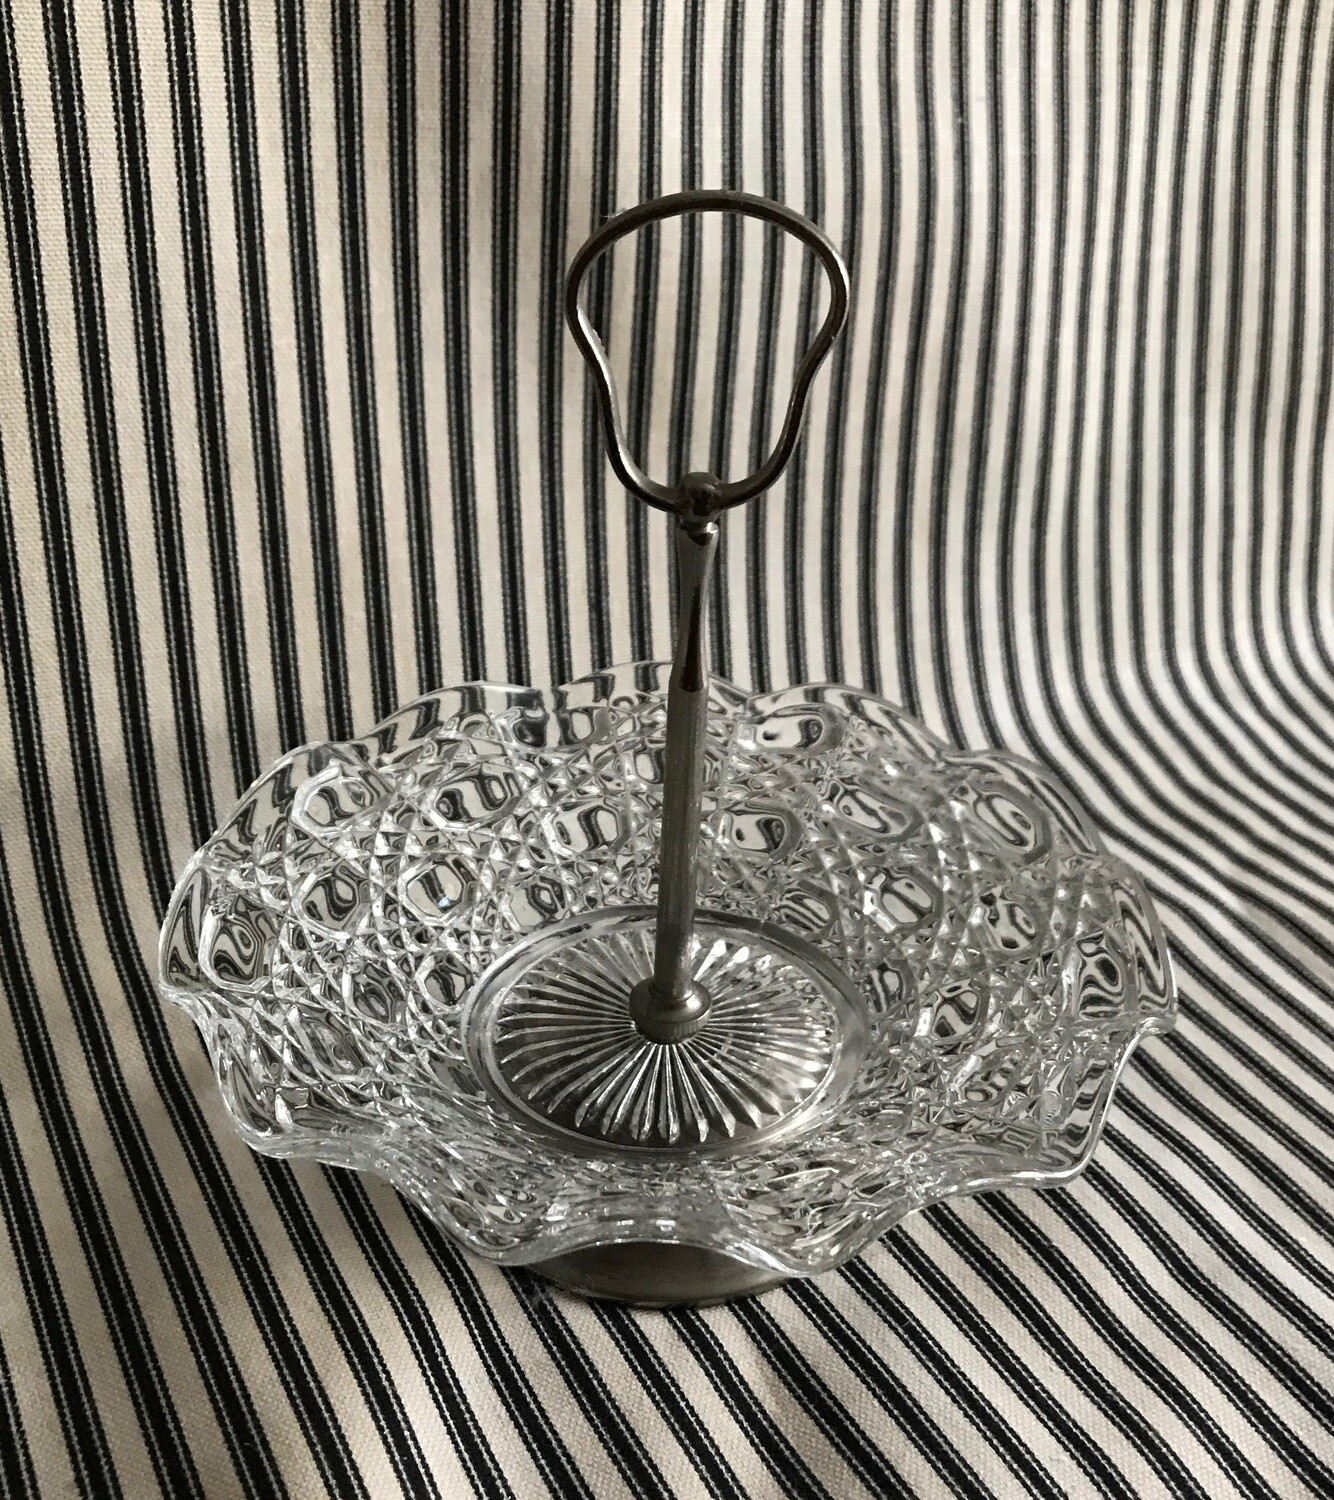 Glass and Silver Plate Dish